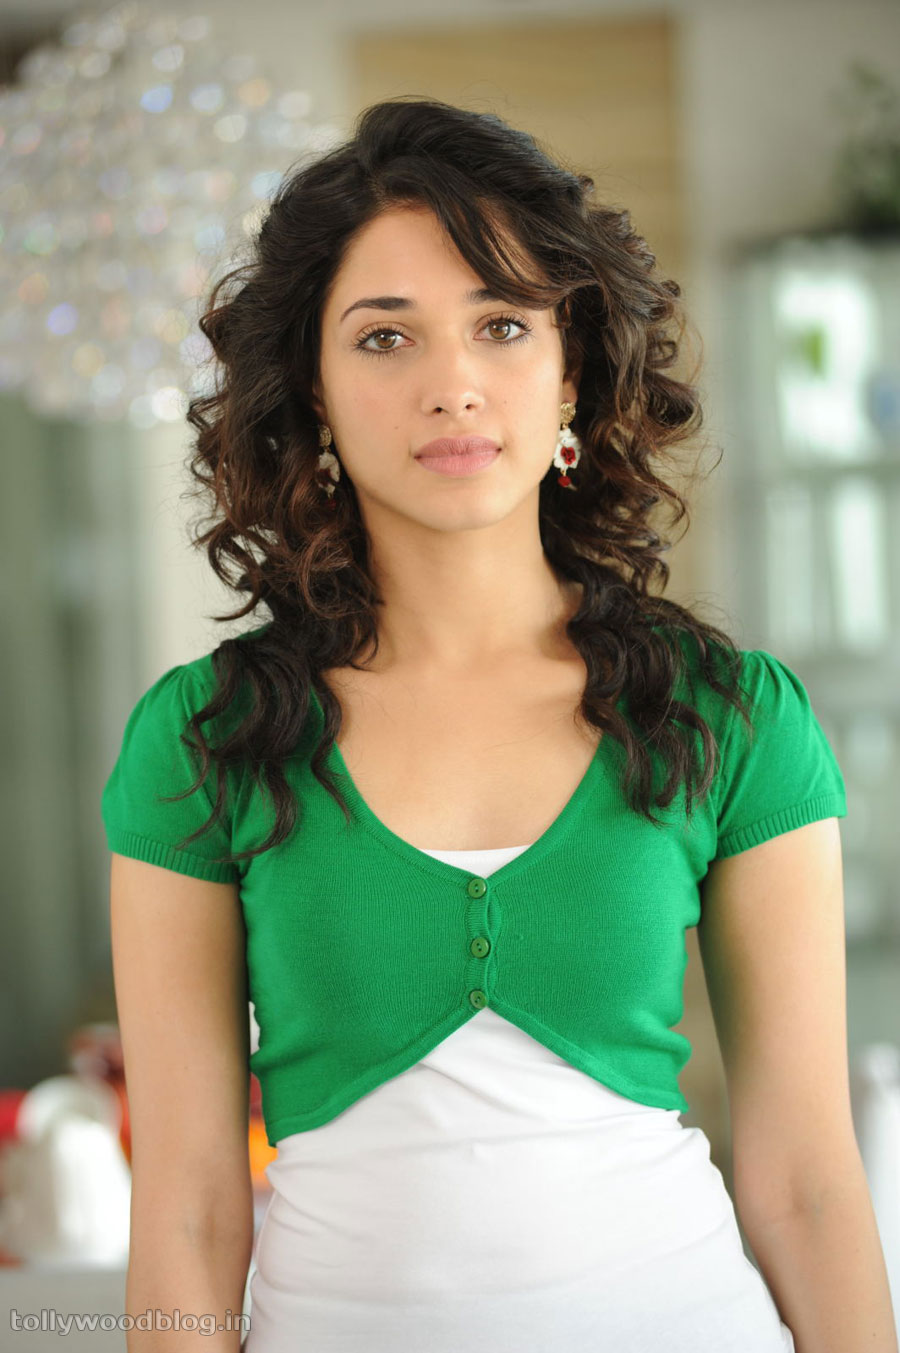 Tamanna Bhatia Beauty Secrets Body Fitness Tips: Tamanna Bhatia Photos Gallery